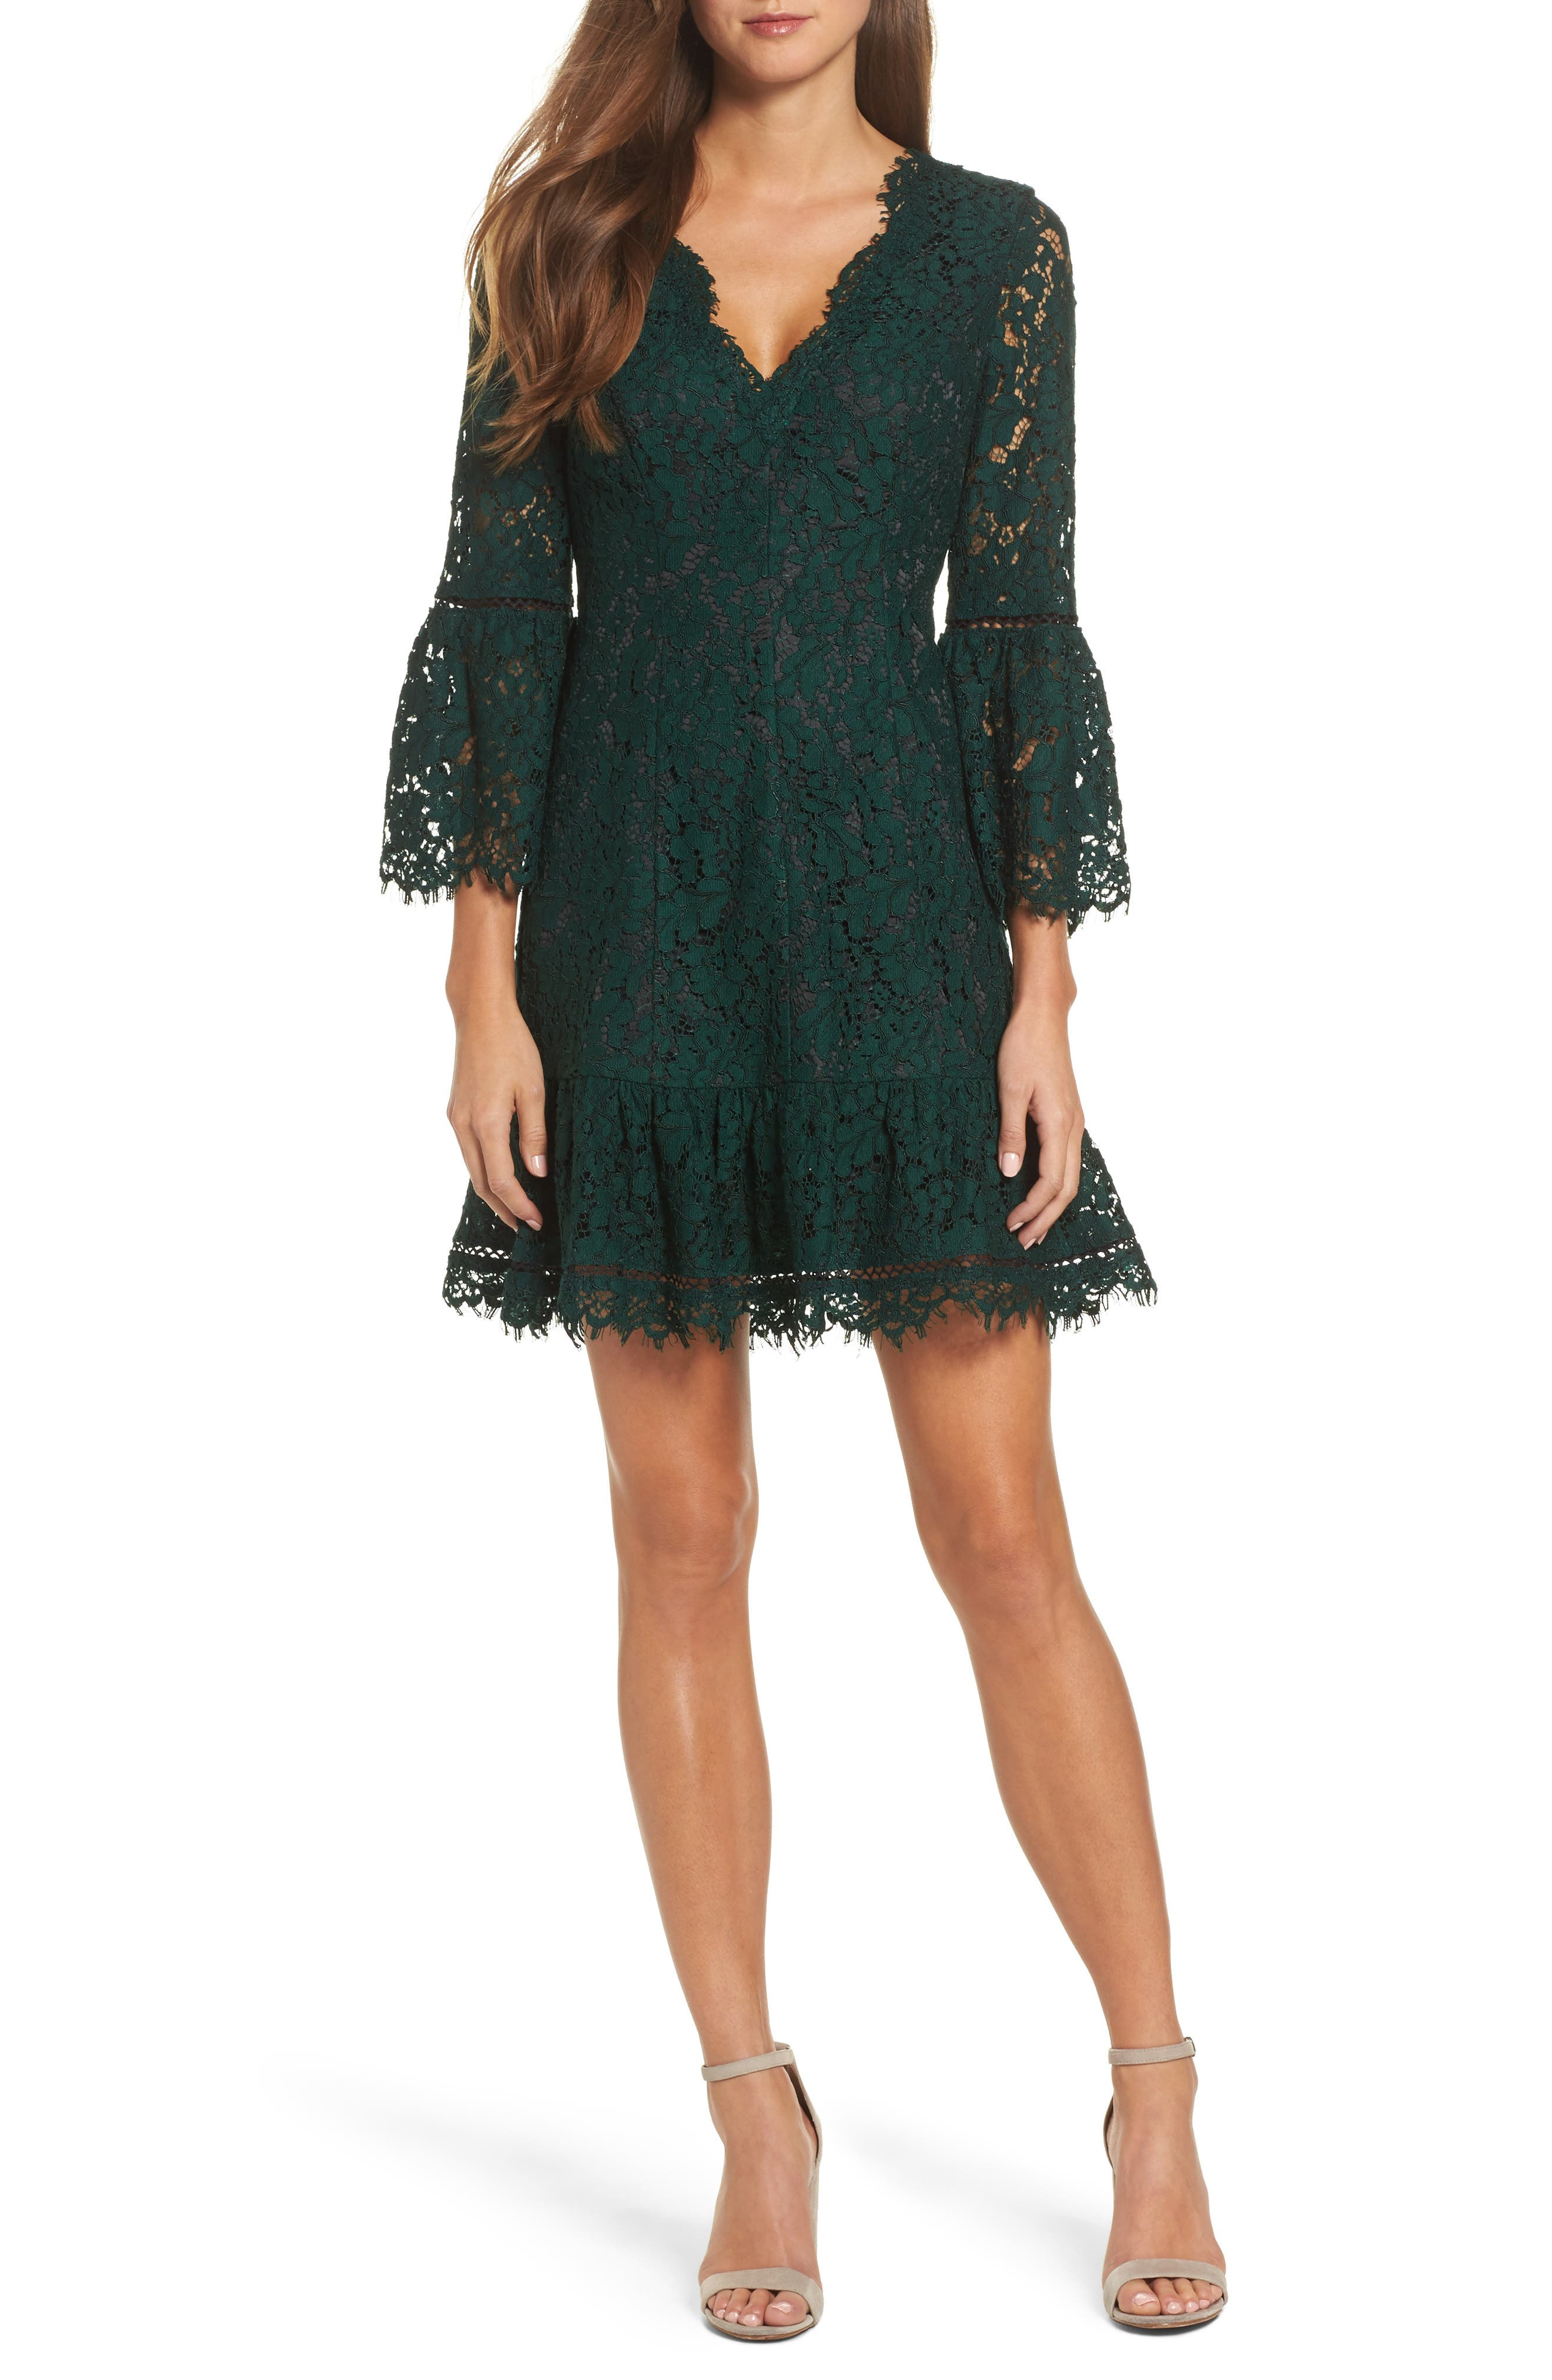 Bell Sleeve Lace Dress,                         Main,                         color, Green/ Black